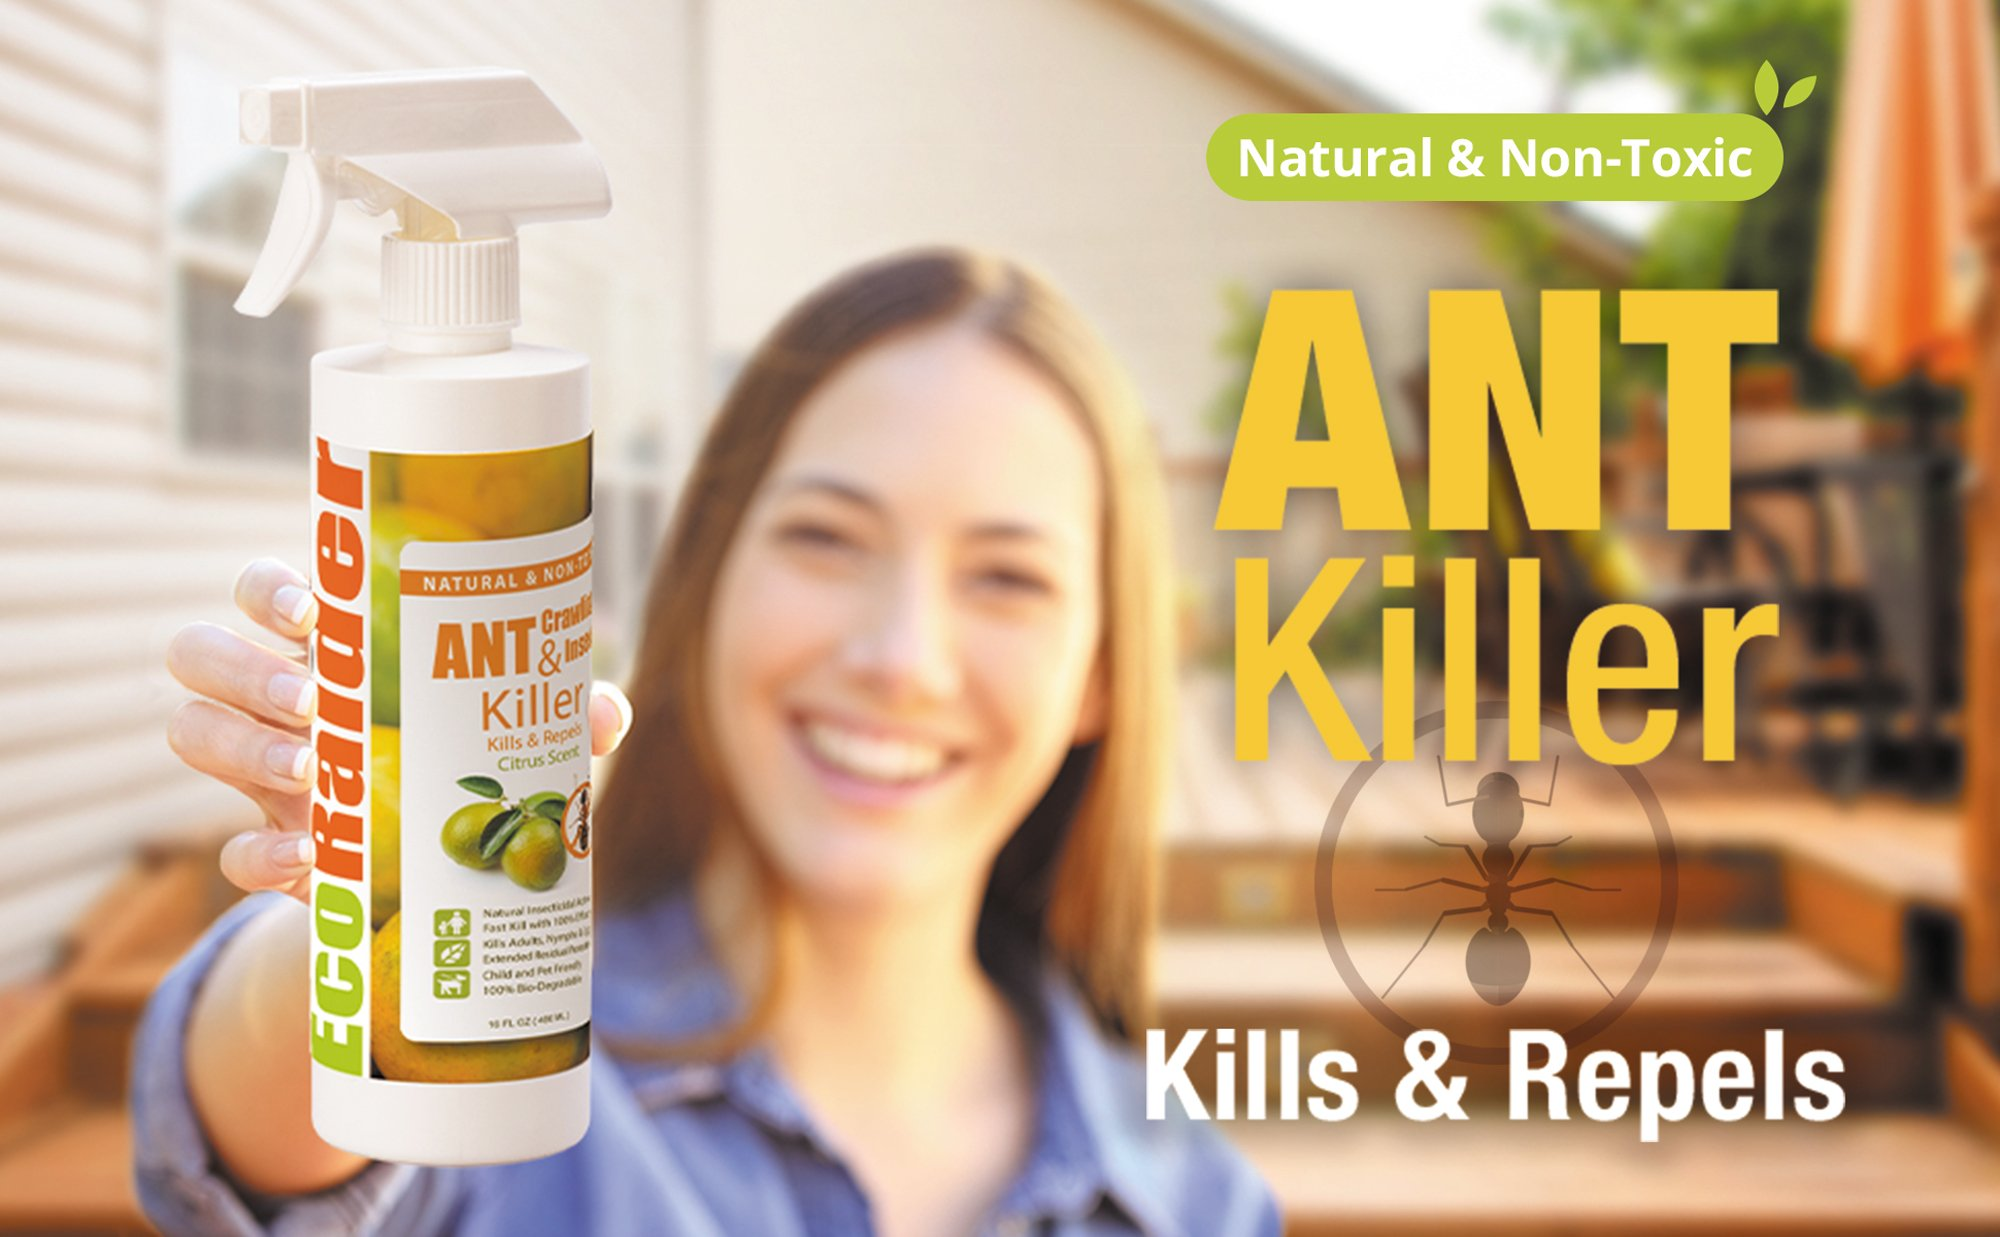 EcoRaider Ant Killer & Crawling Insect Killer (Citrus Scent) 16 OZ, Natural & Non-Toxic by EcoRaider (Image #3)